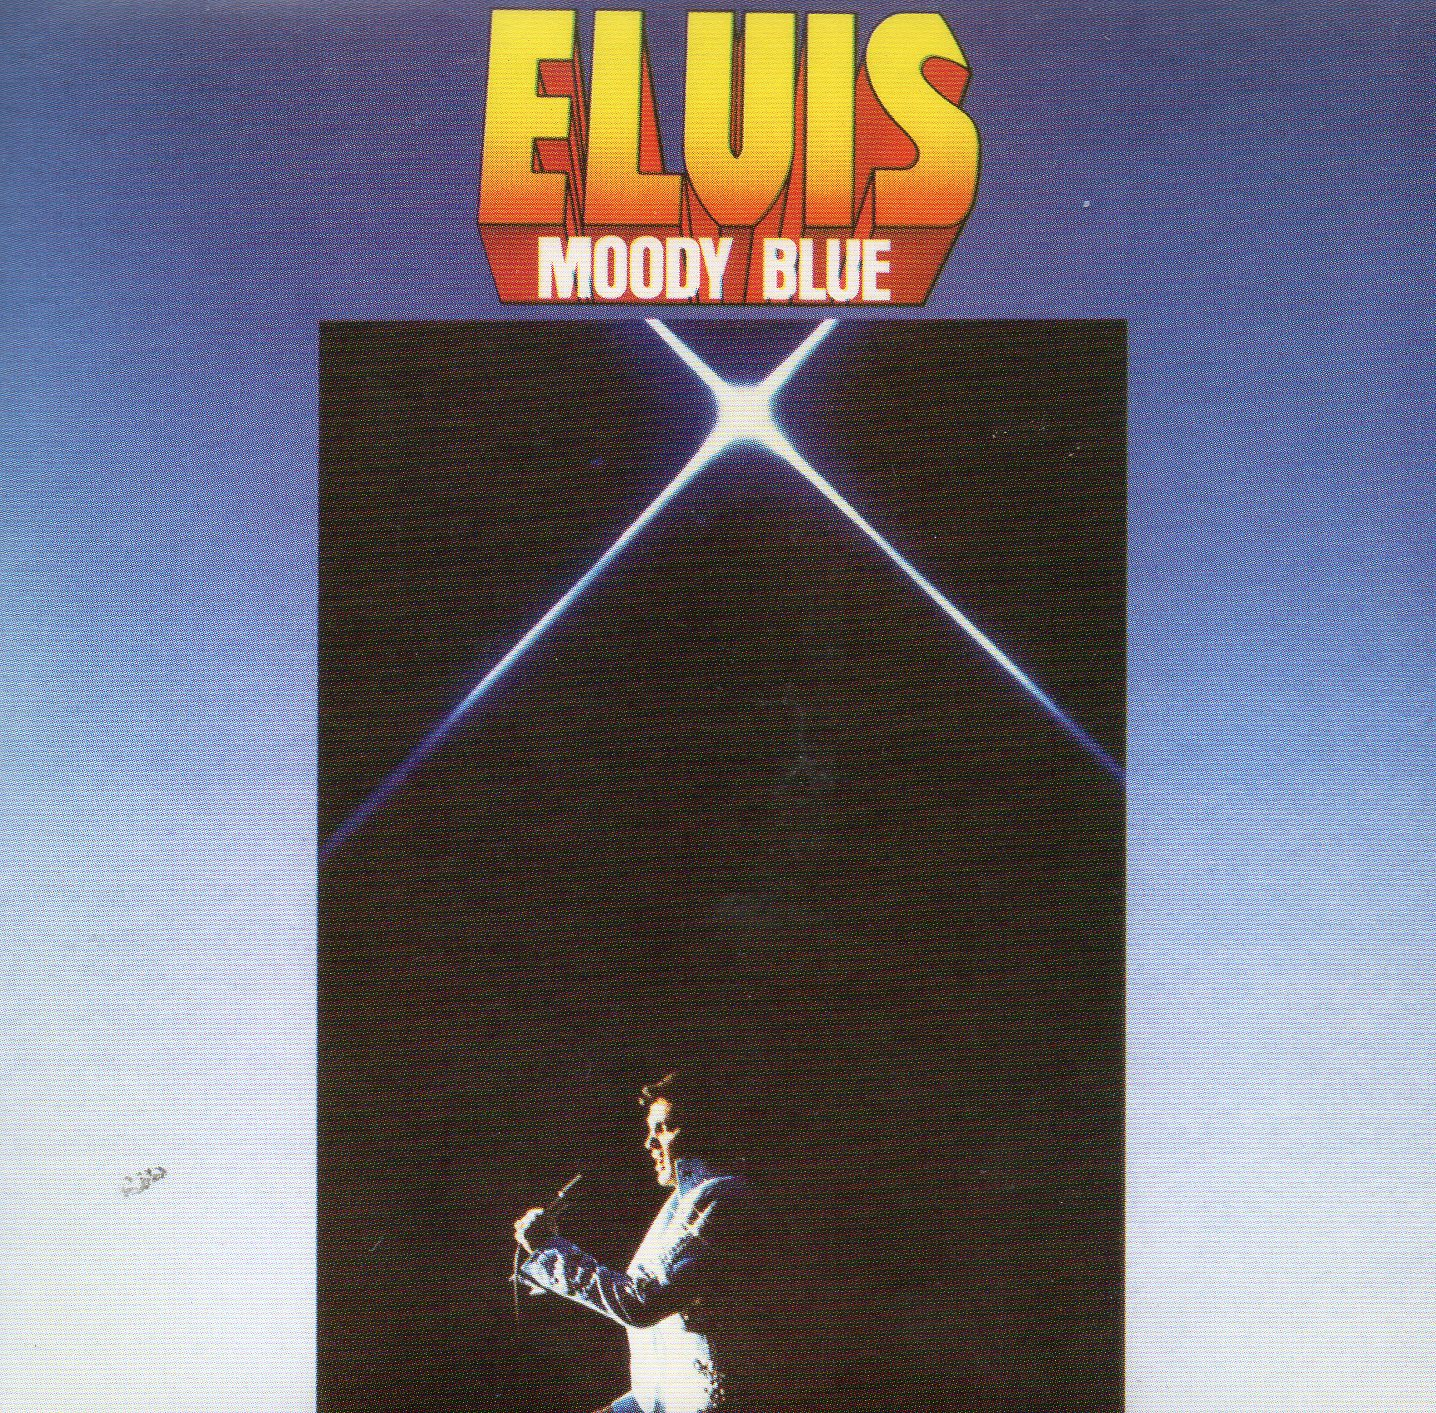 Elvis PRESLEY - Moody Blue (1977 - Mini Lp Replica - 19-track Card Sleeve)